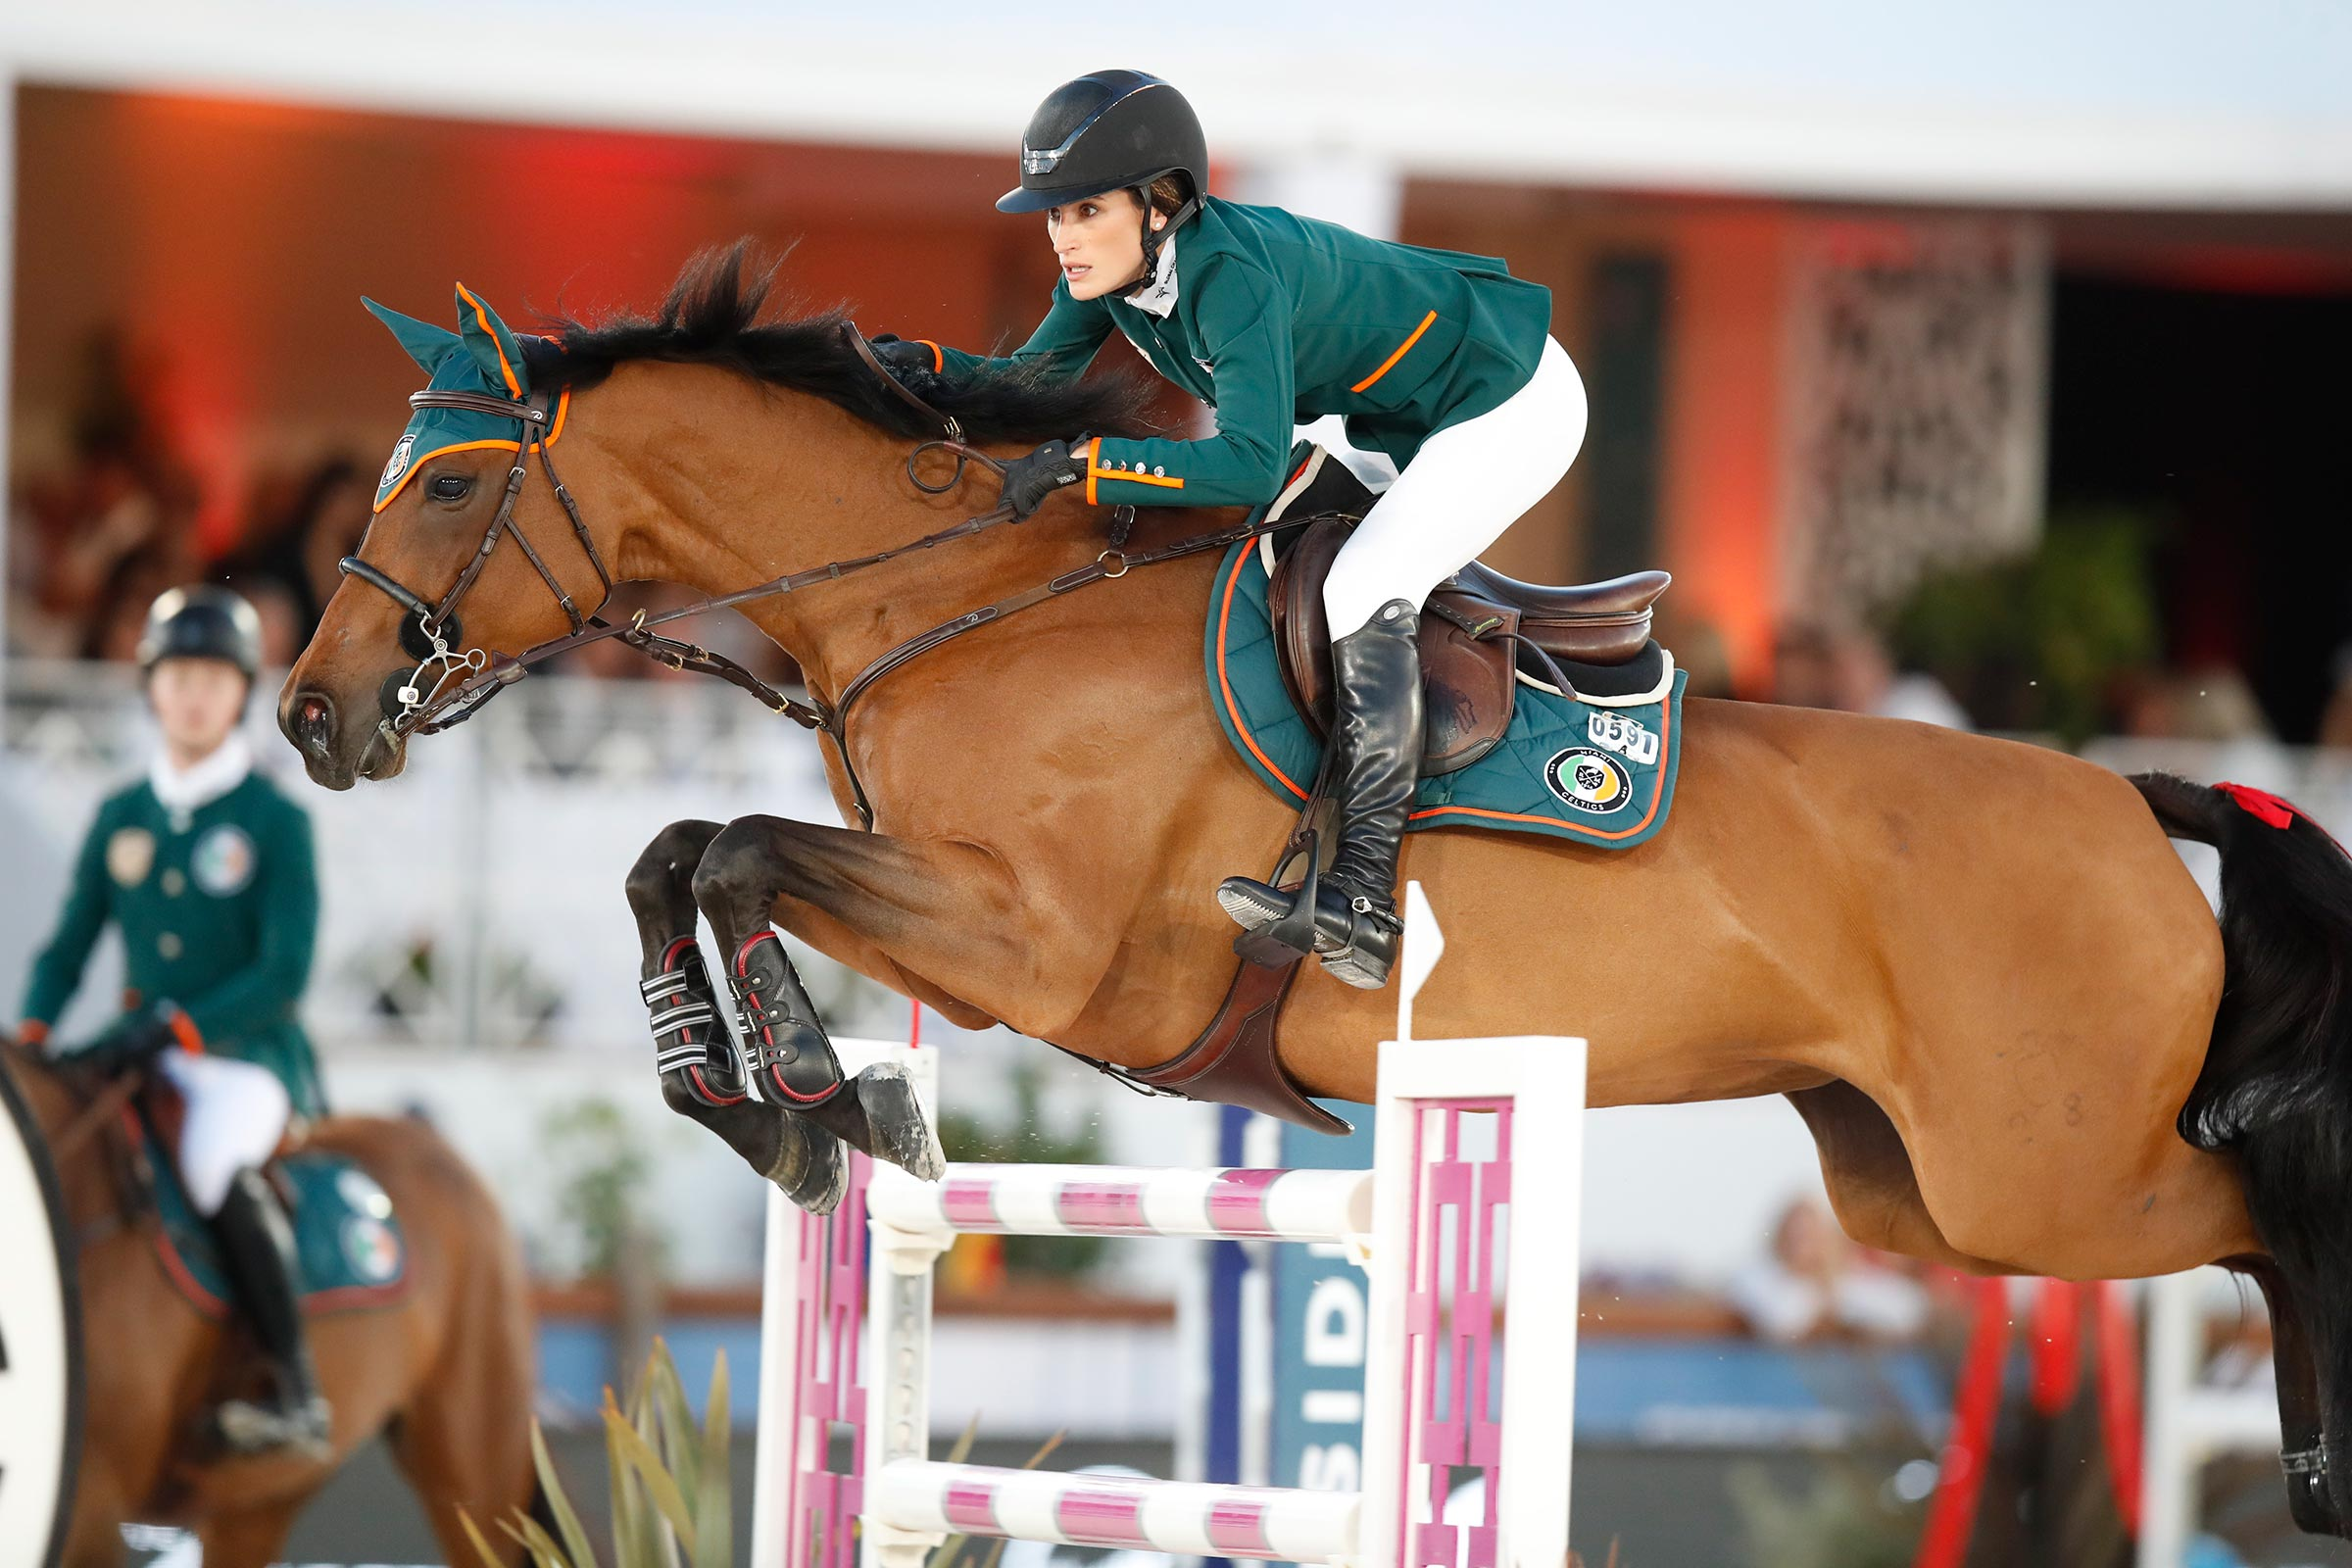 Team Miami Celtics - Jessica Springsteen (USA) on RMF Zecilie ph.Stefano Grasso/GCL CANNES 2019 DOWNLOAD